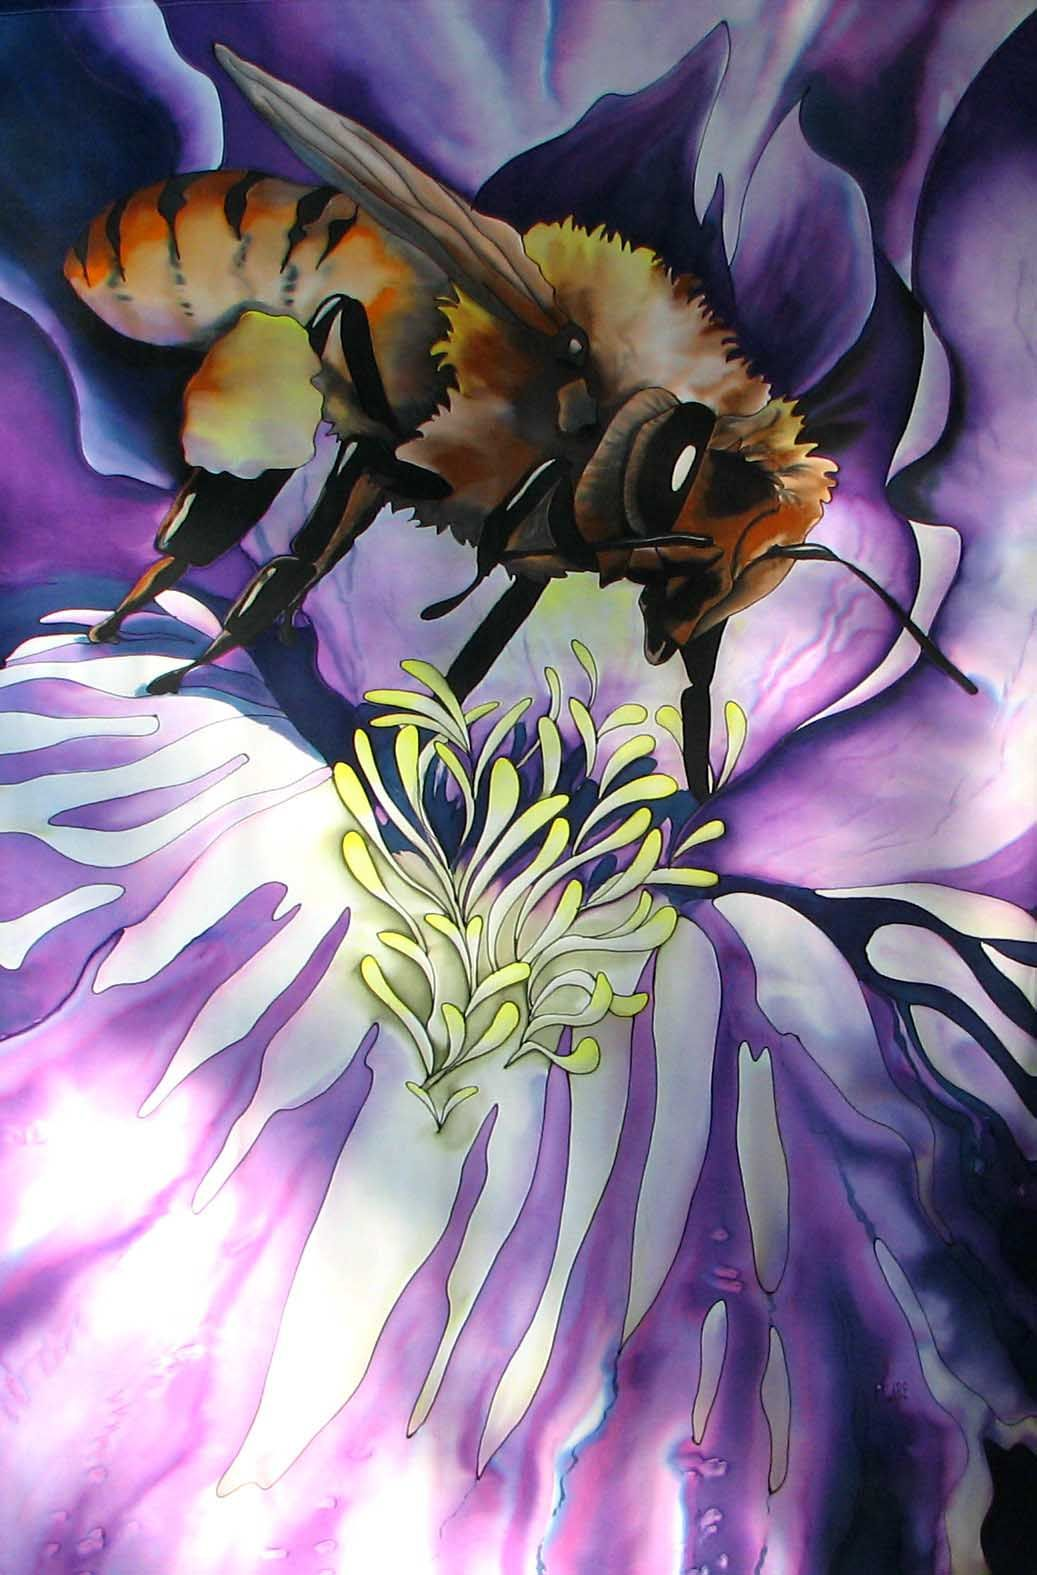 """""""Bee Banner"""", 72 x 45 inches.  Silk painting by Pamela Glose.  Visit www.MySilkArt.com for Pamela's how-to ebooks on silk painting."""